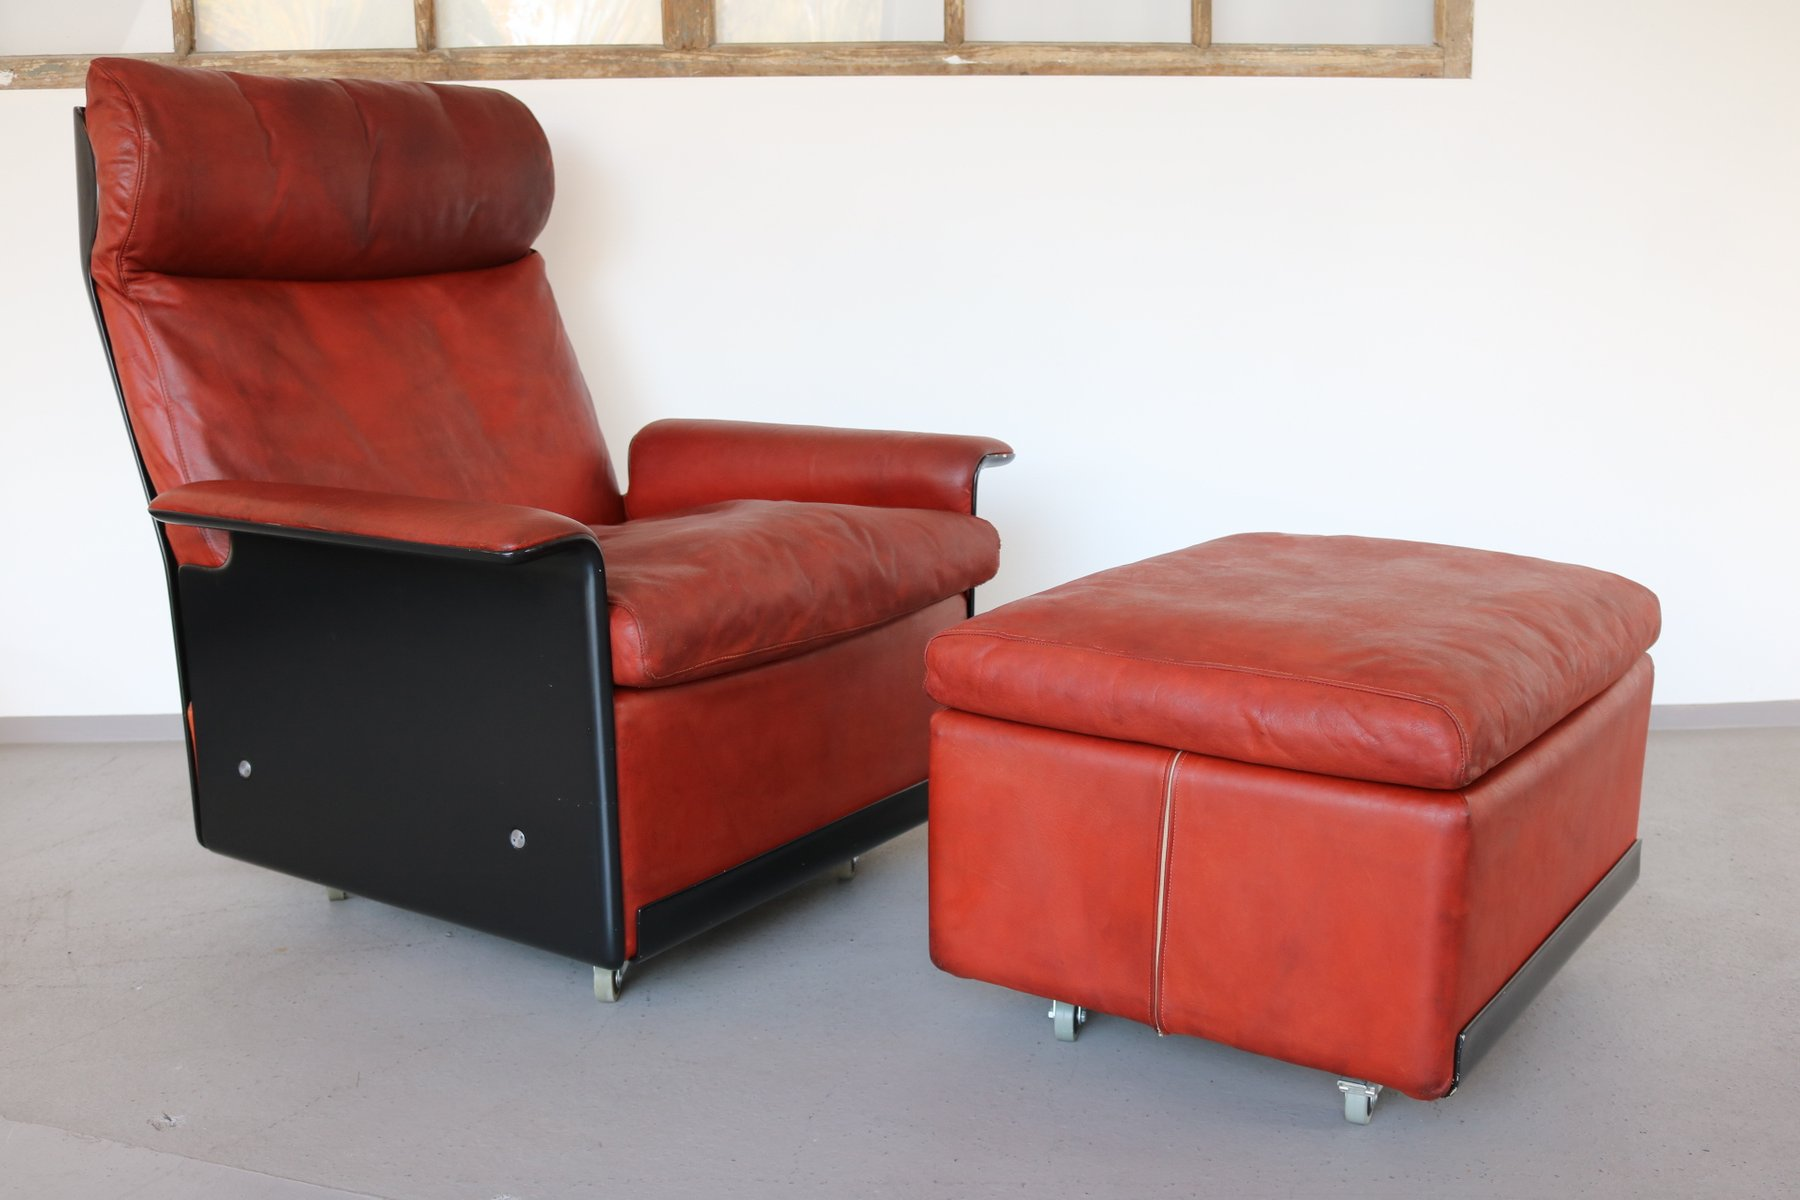 620 Highback Leather Lounge Chair U0026 Ottoman By Dieter Rams For Vitsoe, 1960s